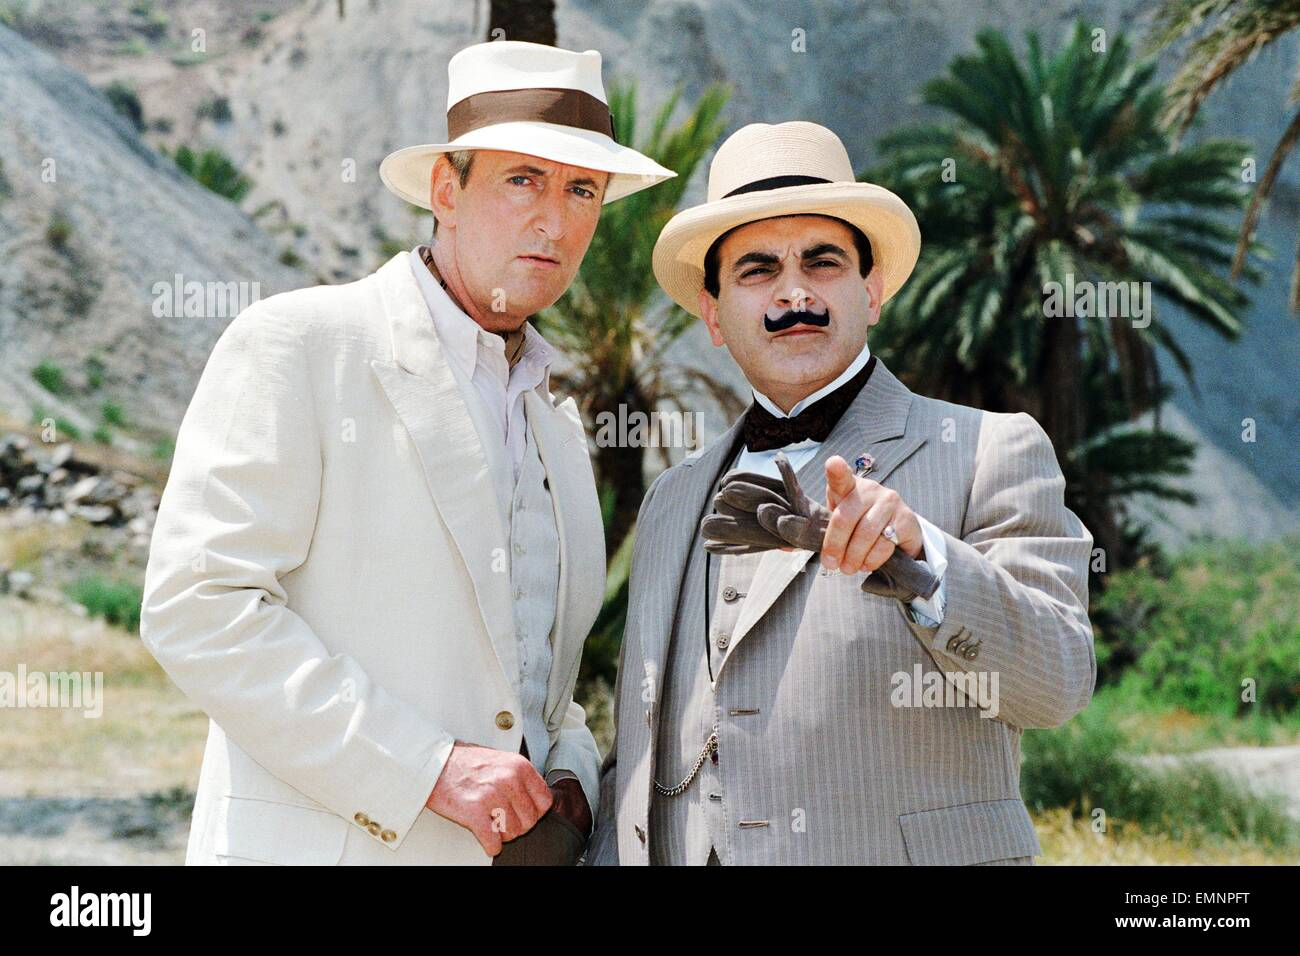 David Suchet as the famous Belgian detective Hercules Poirot (right) with Hugh Fraser who plays Captain Hastings - Stock Image